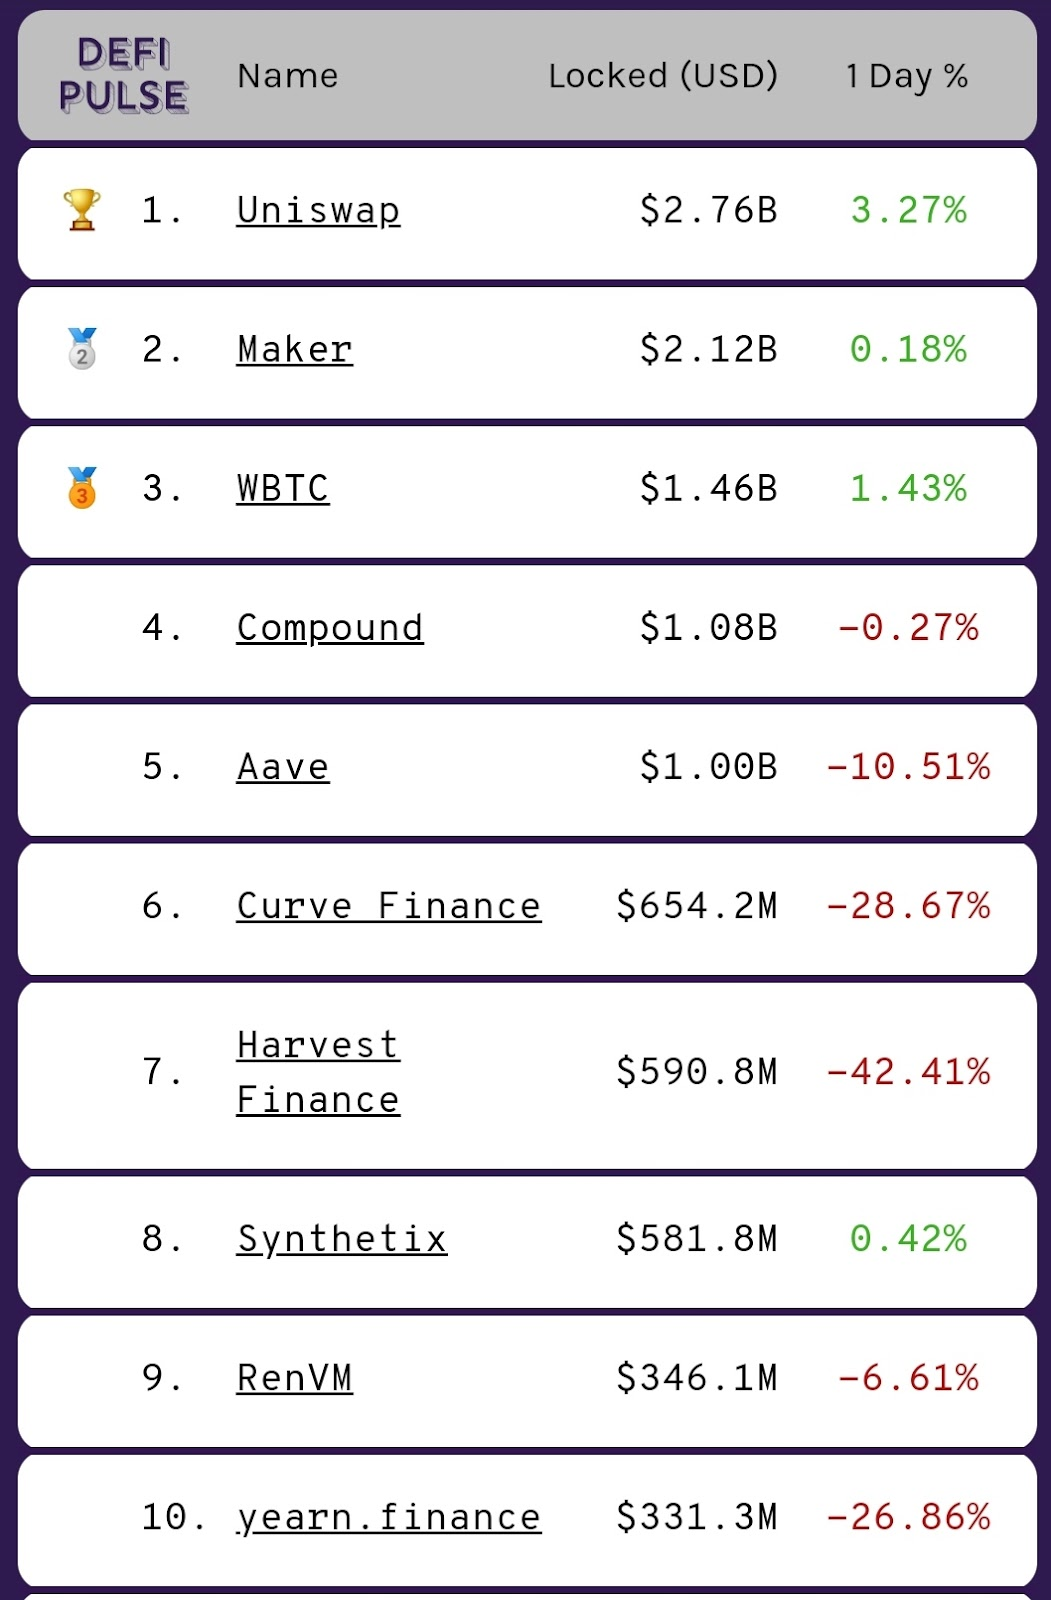 Top 10 DeFi projects classified by total value locked